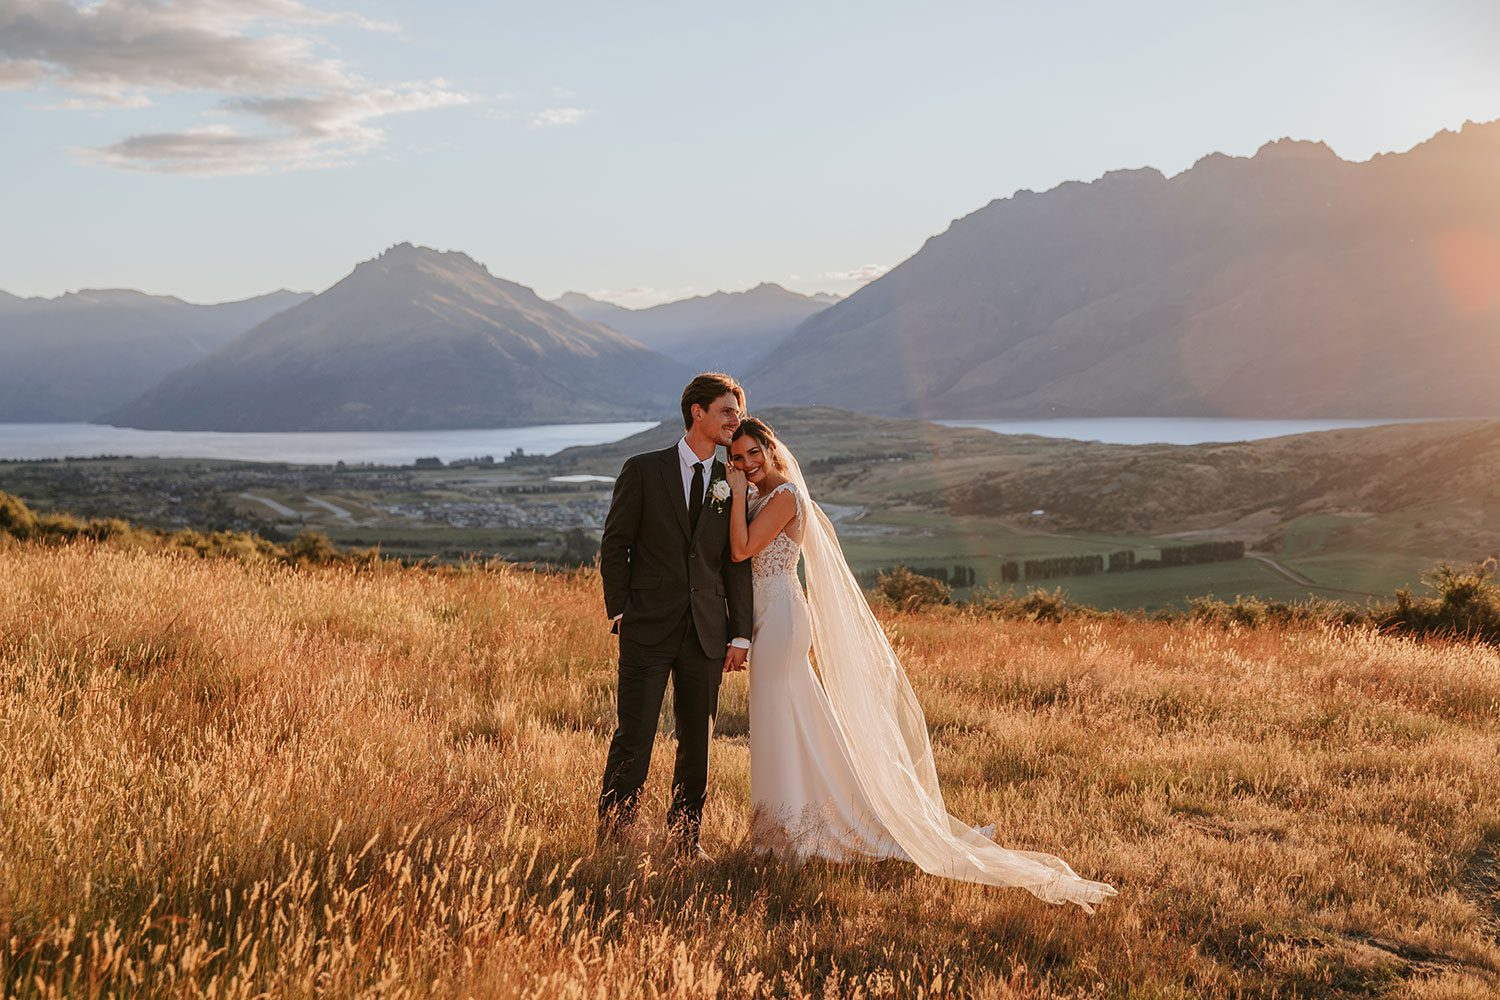 Bride wearing bespoke bridal gown with richly beaded lace over sheer tulle bodice and low back from Auckland wedding dress designer Vinka designs - in field leaning on groom